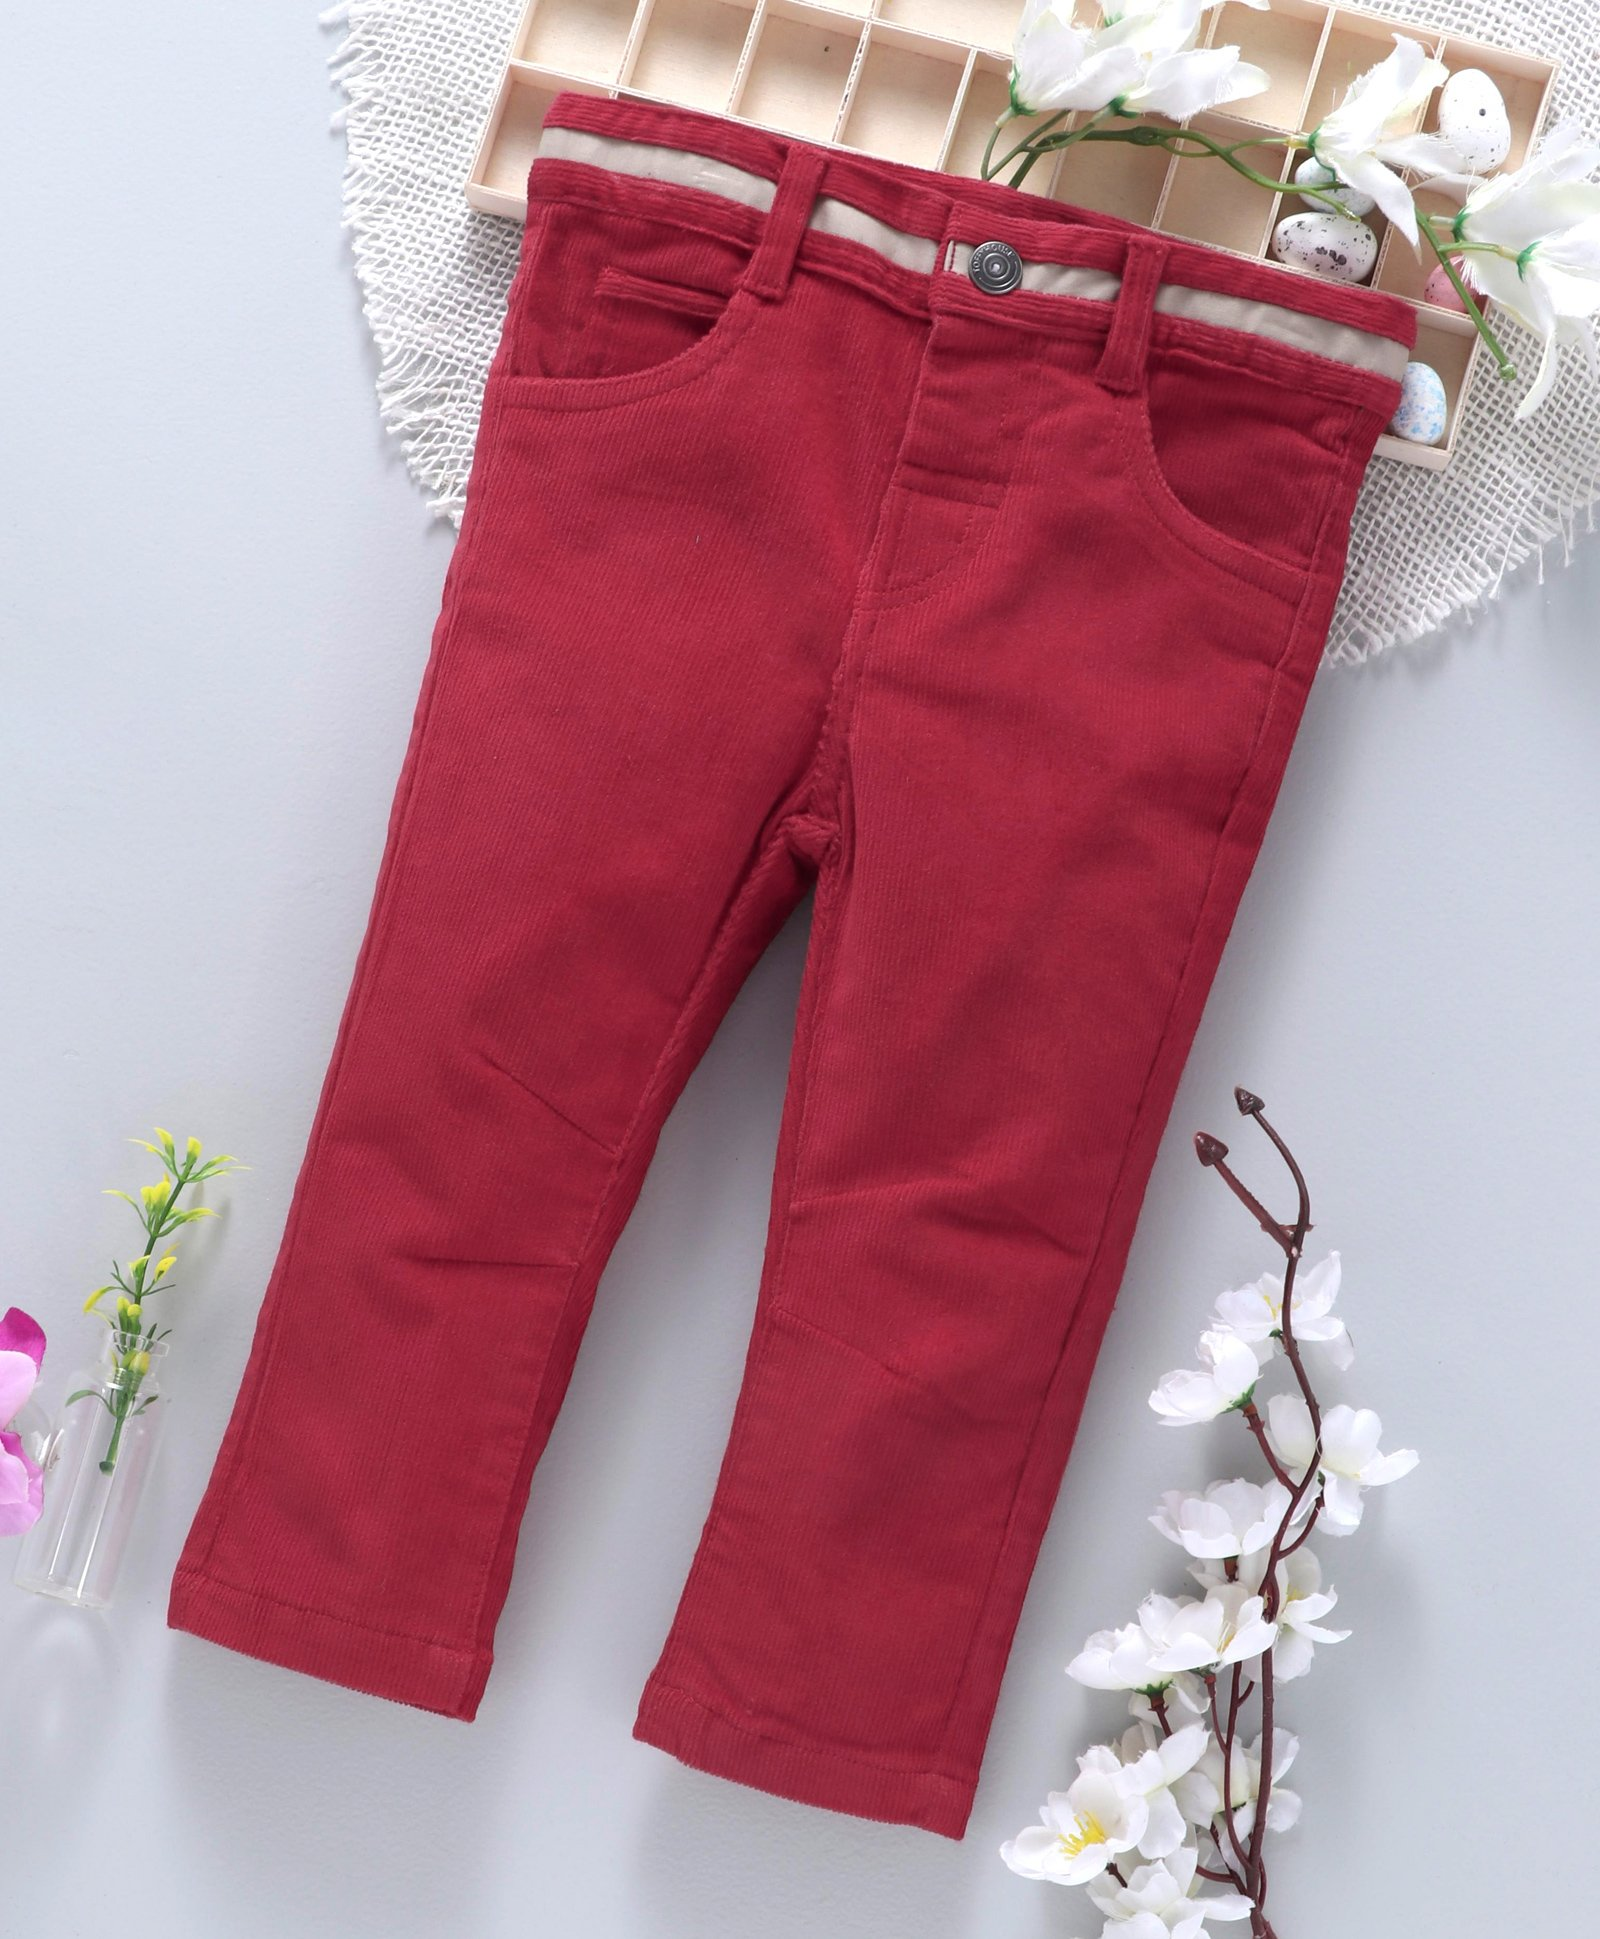 7d0684ed690c2 Buy ToffyHouse Full Length Corduroy Pants Red for Girls (6-9 Months ...